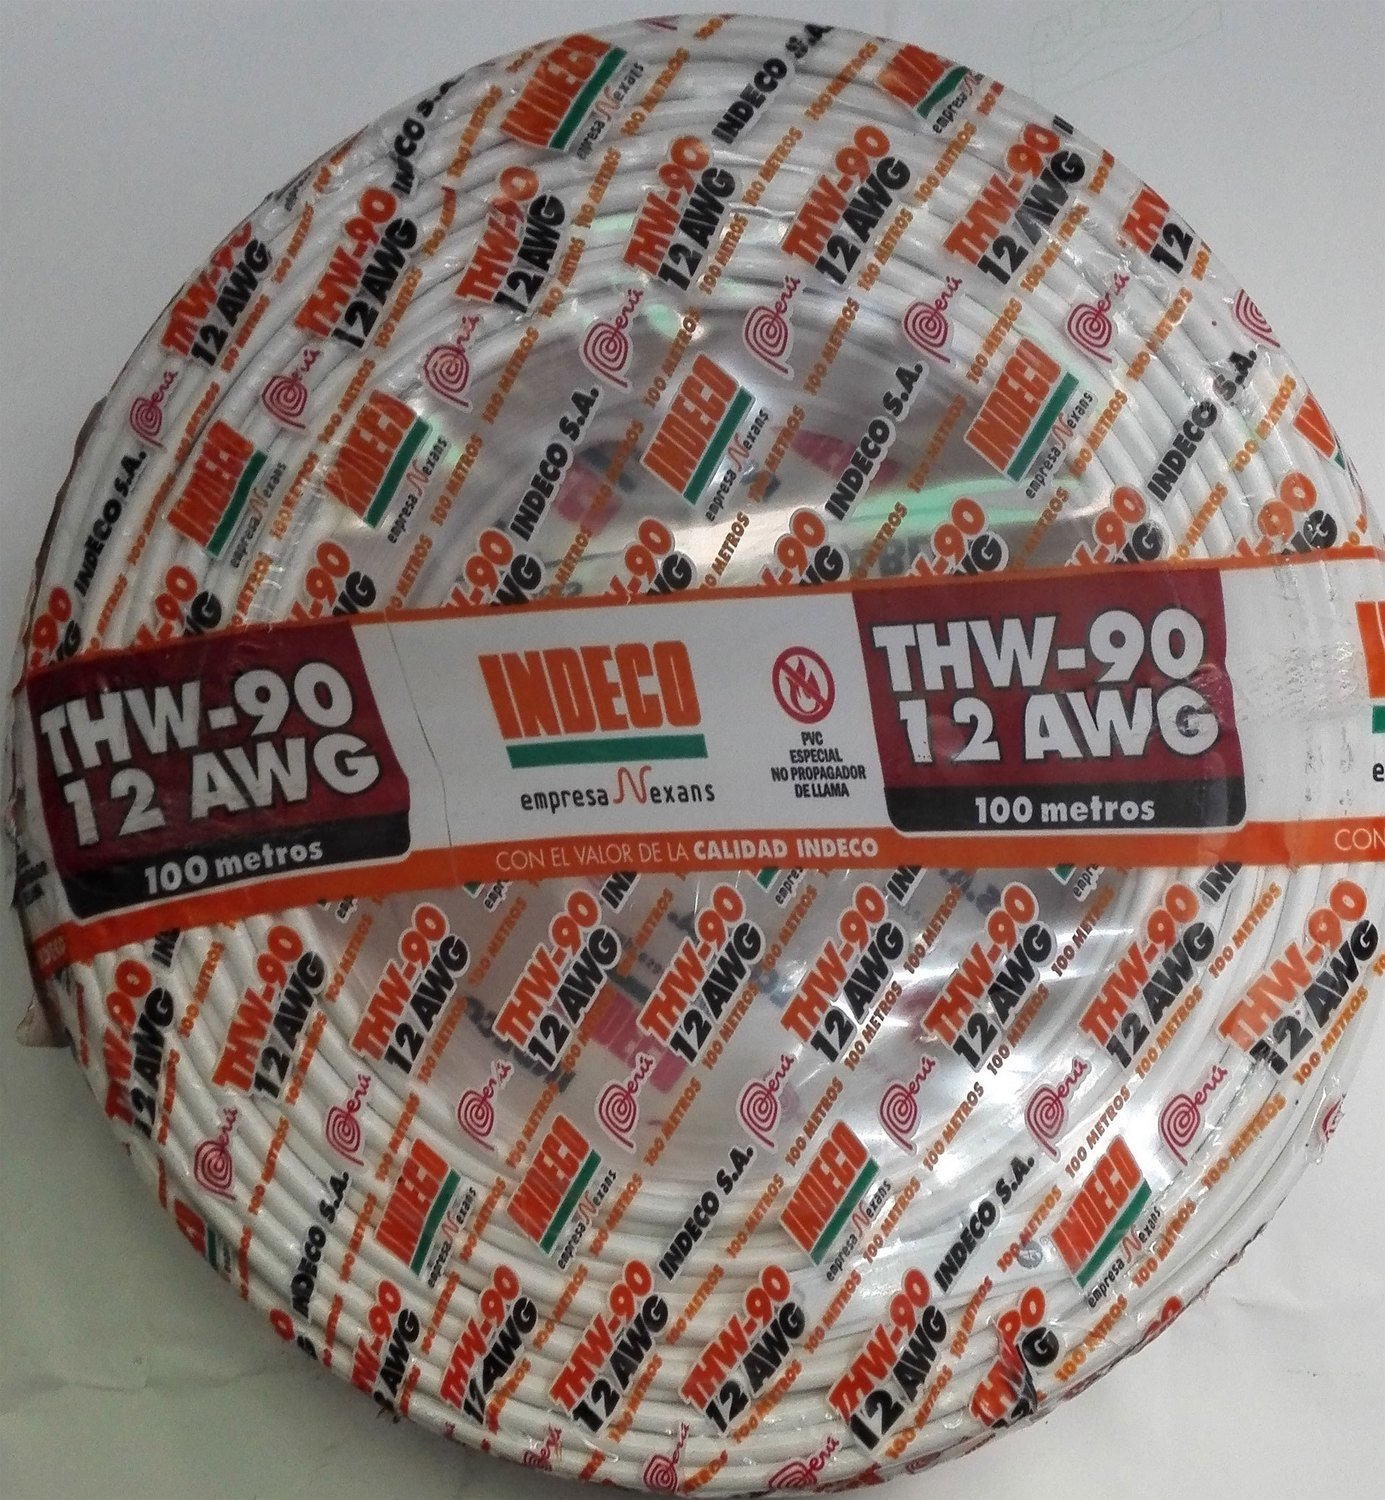 Cable THW90 12AWG